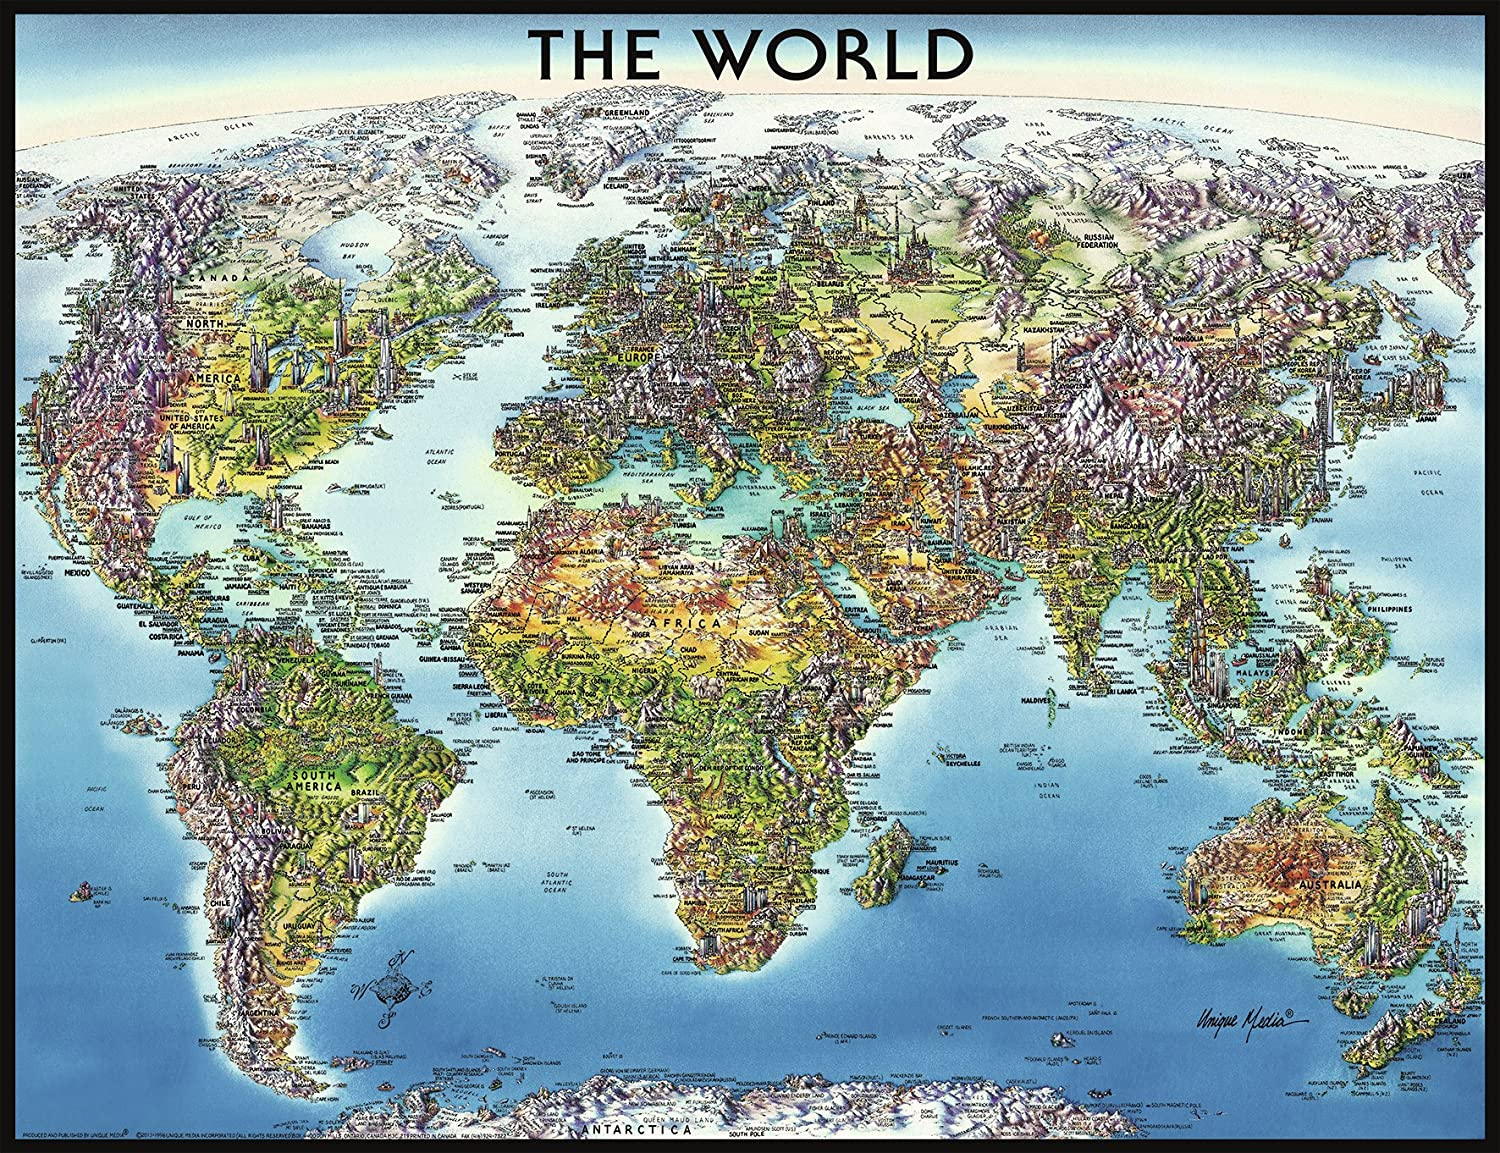 Ravensburger world map jigsaw puzzle 2000 piece amazon ravensburger world map jigsaw puzzle 2000 piece amazon toys games gumiabroncs Image collections